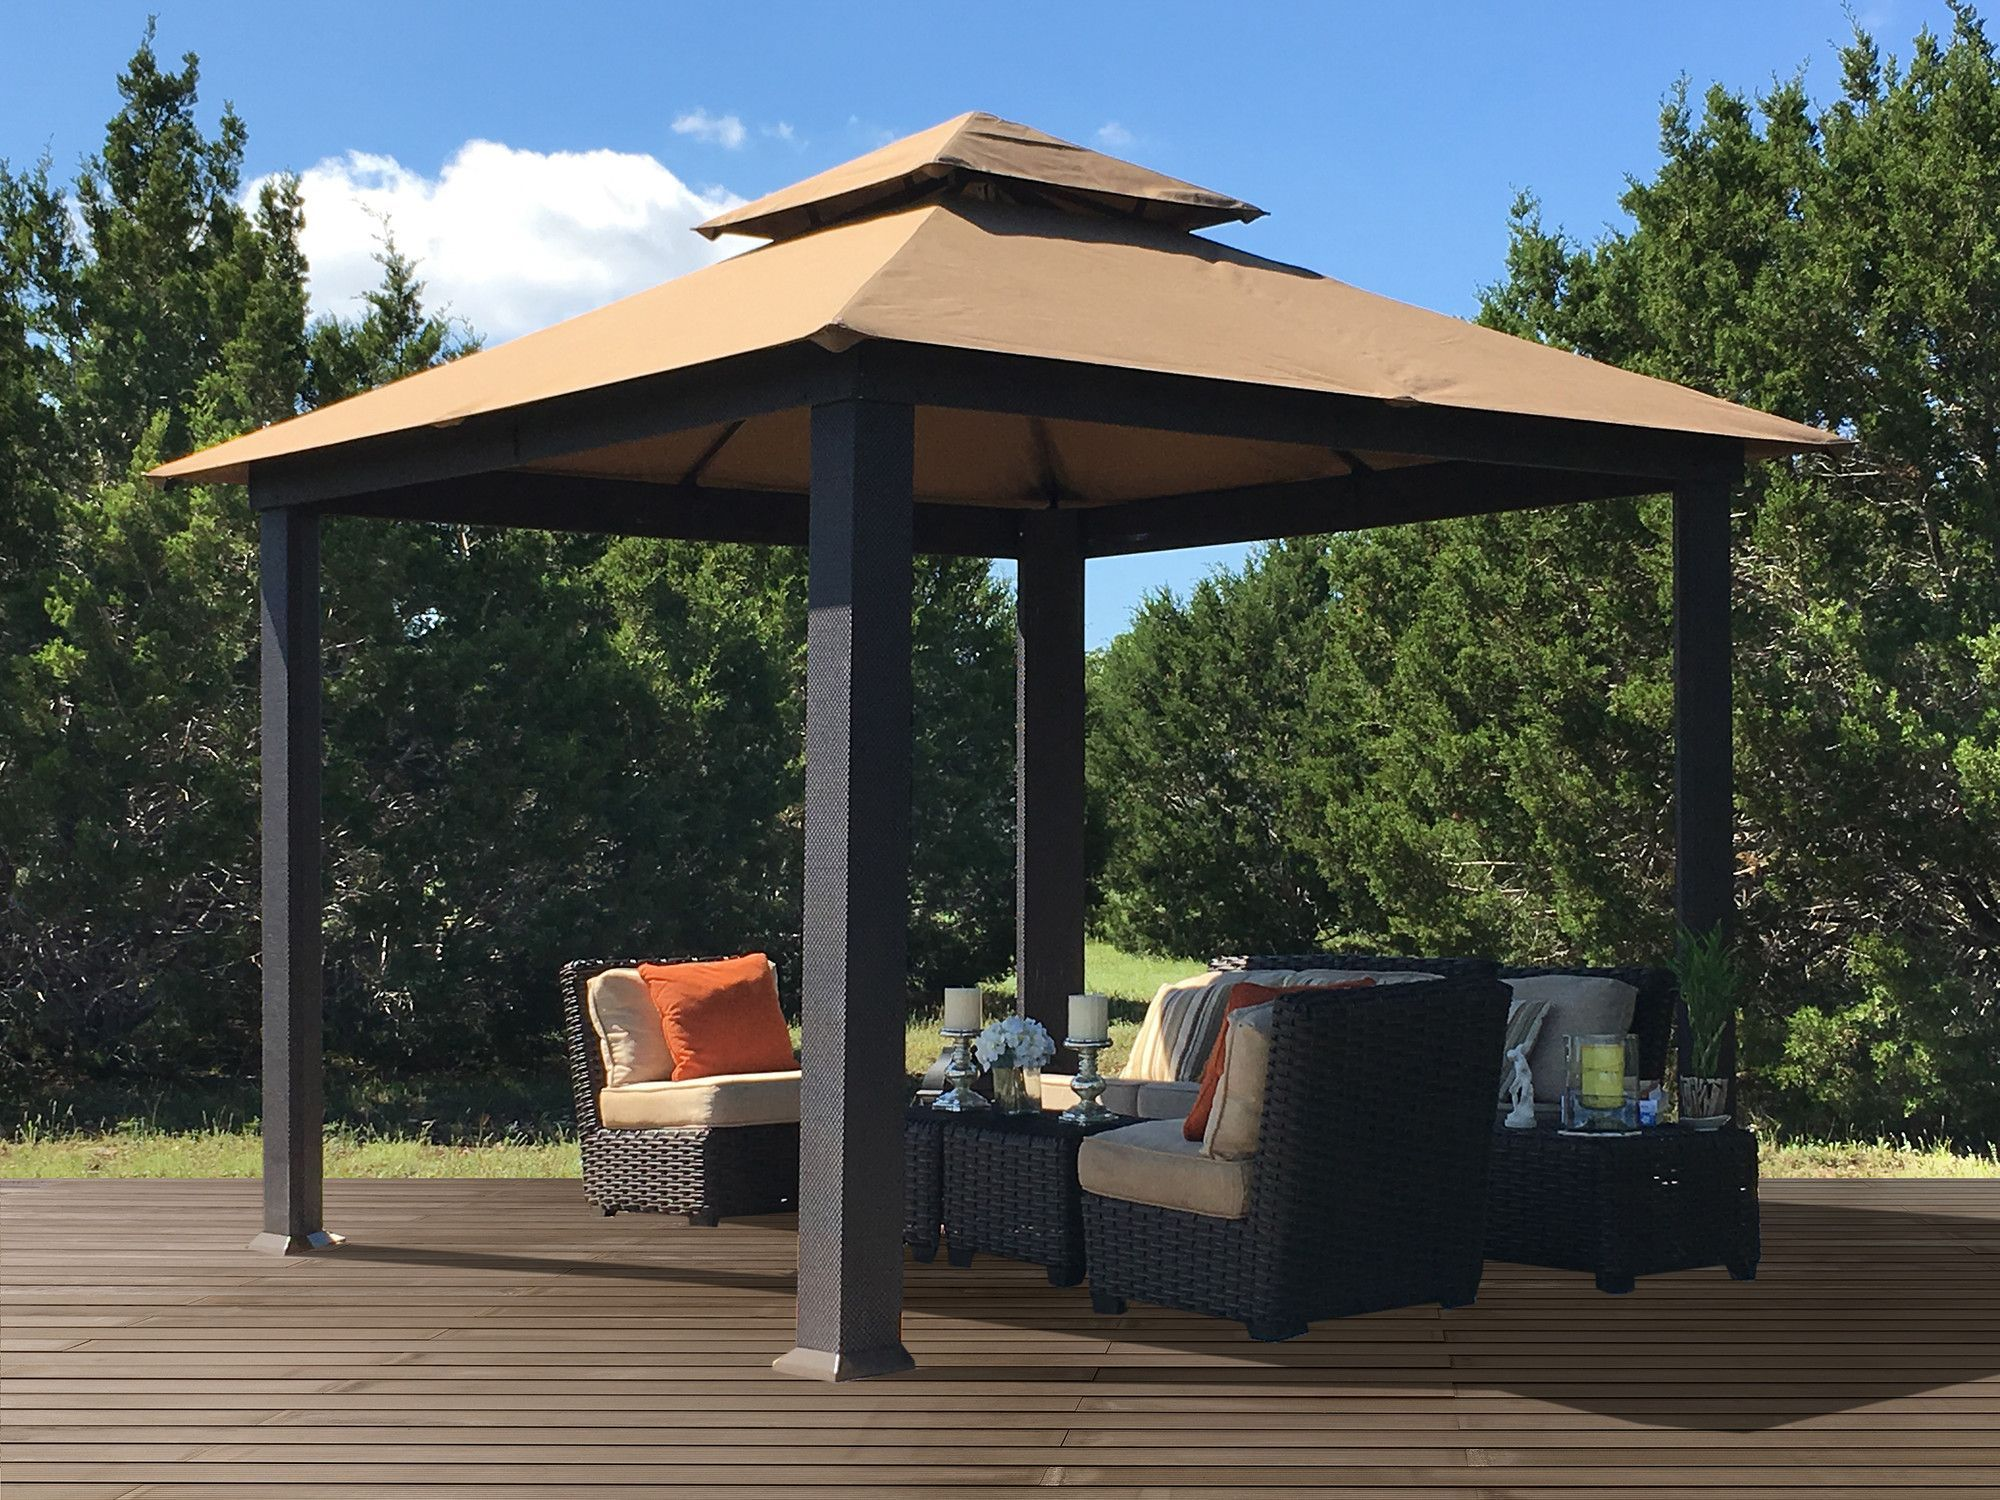 Savannah 10 Ft W X 10 Ft D Steel Patio Gazebo Patio Gazebo Backyard Gazebo Gazebo